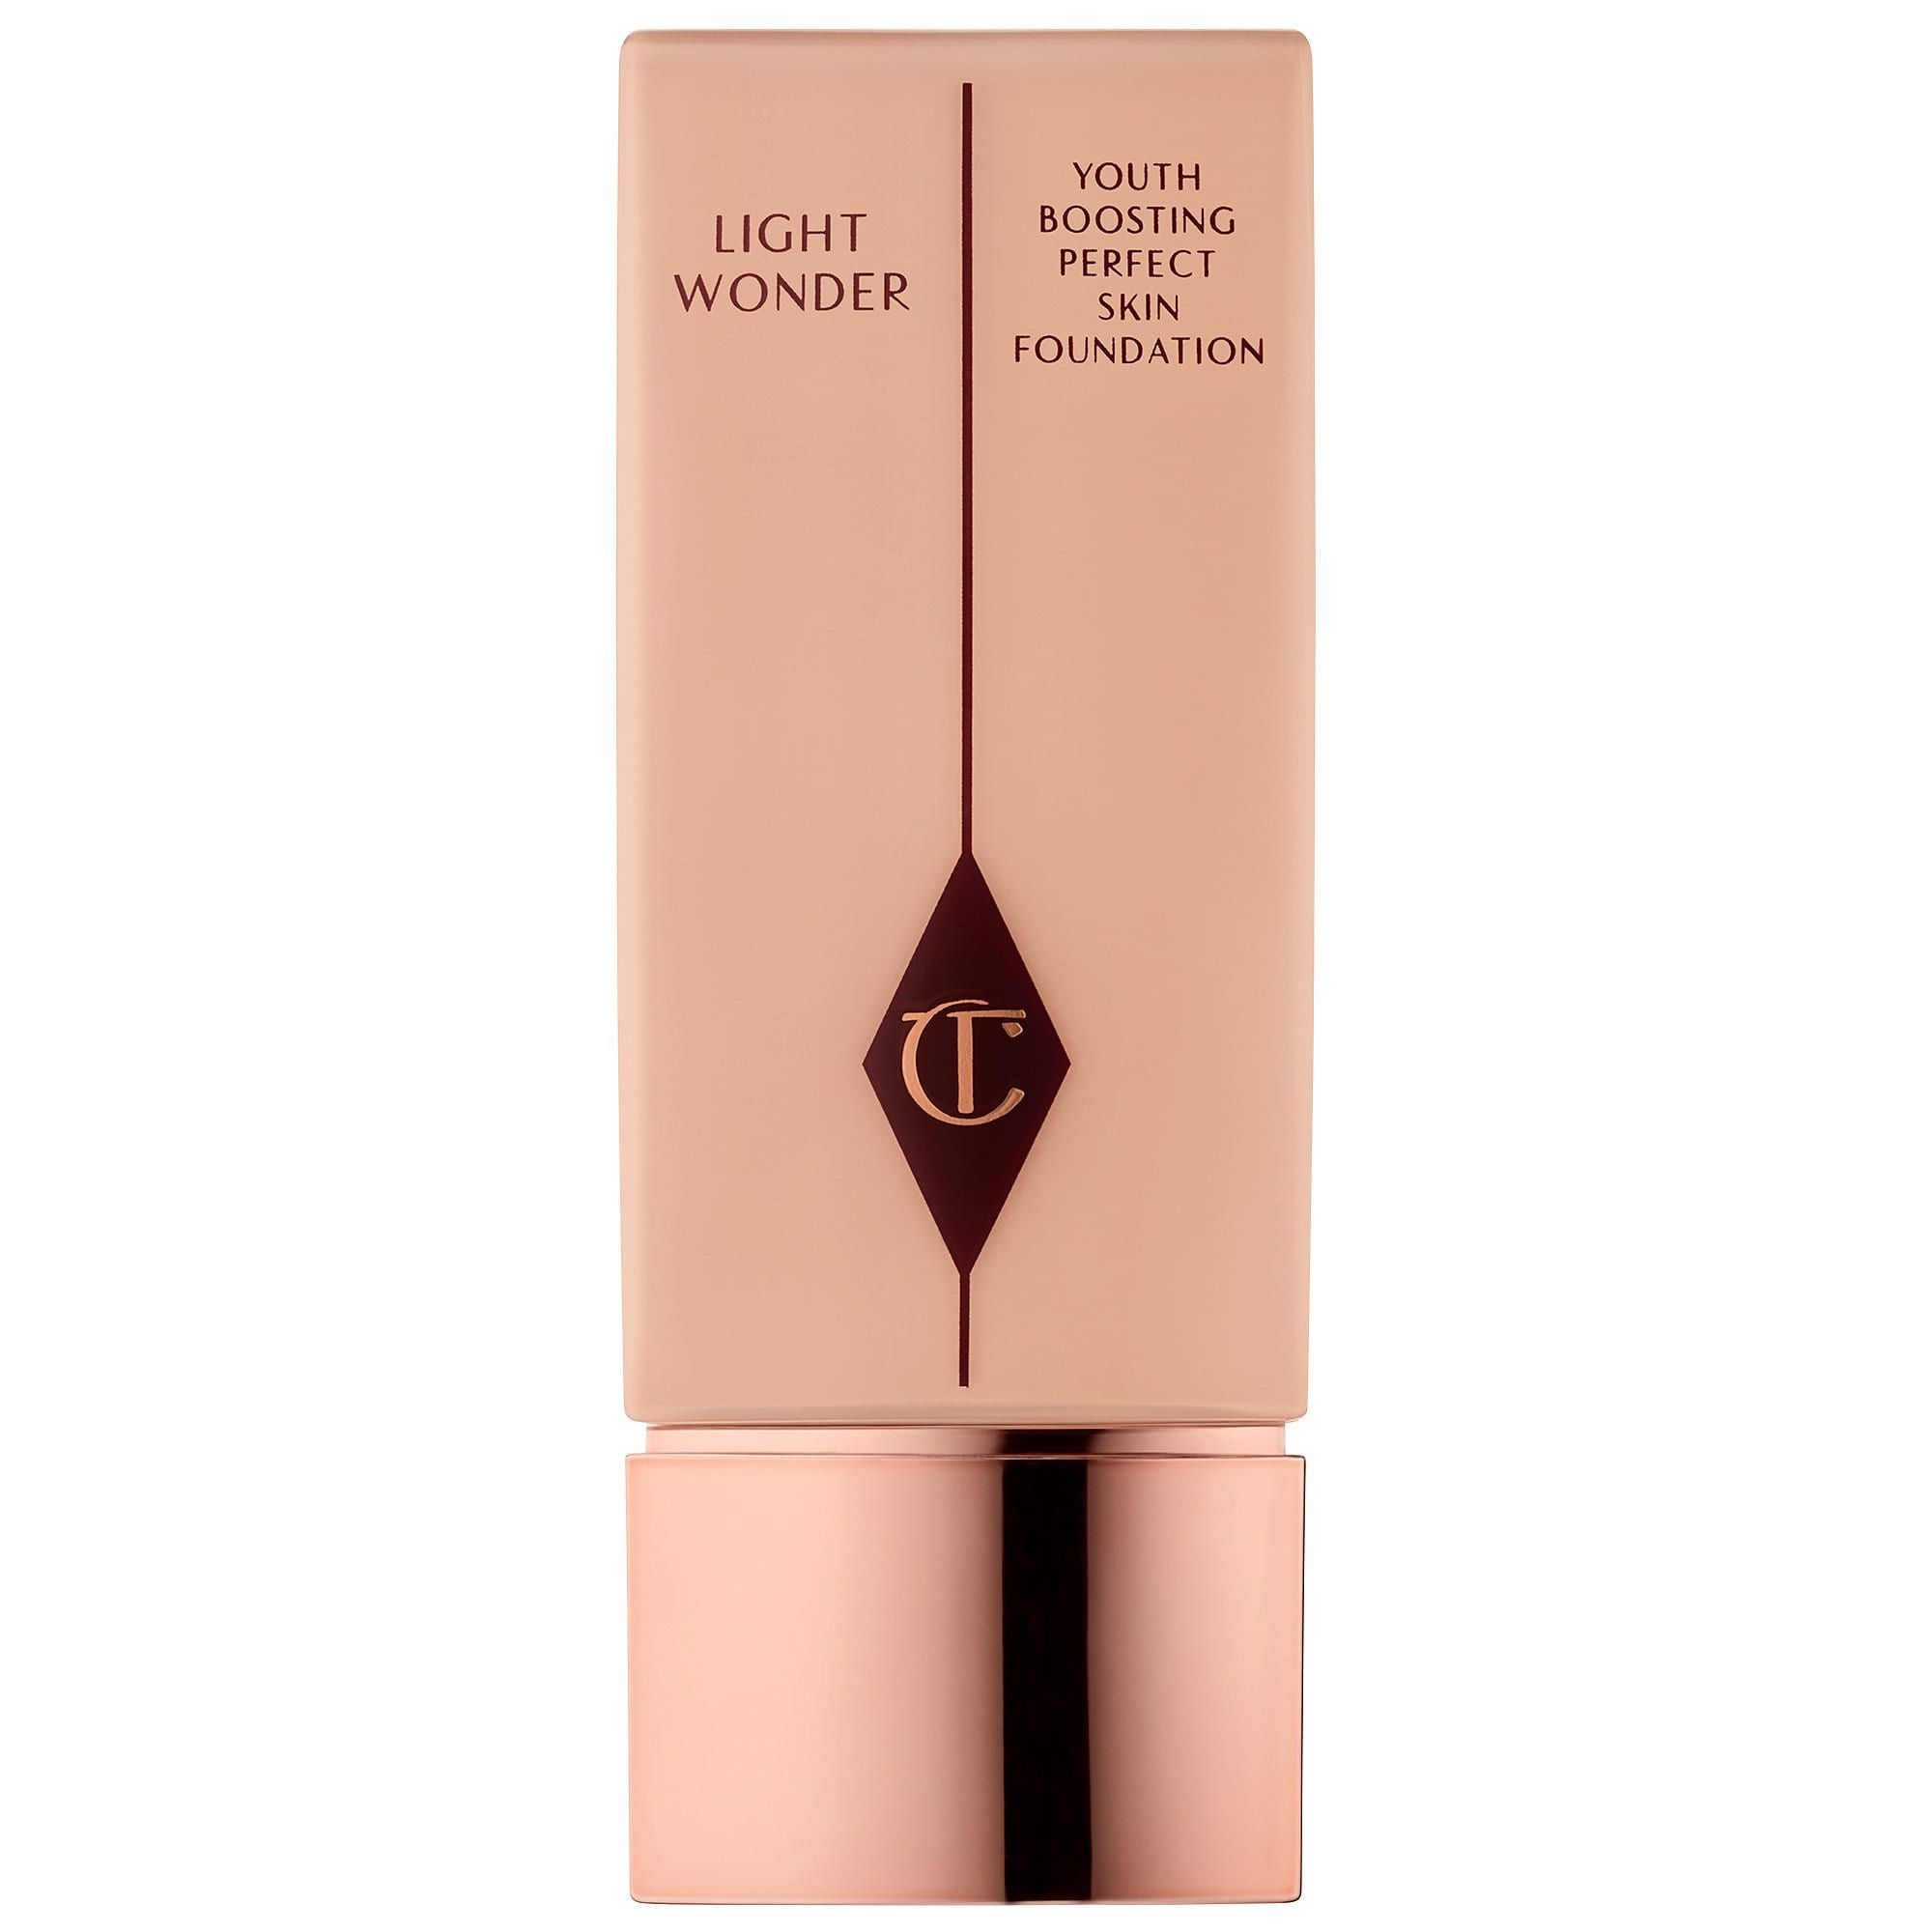 For Plump-Looking Skin Light Wonder Foundation Charlotte Tilbury sephora.com $46.00 SHOP NOW There's a fine line between luminous and greasy skin, but those with oily skin can achieve the former with Charlotte Tilbury's foundation. You get full coverage without the heavy feeling along with a host of other benefits, like boosted collagen production.